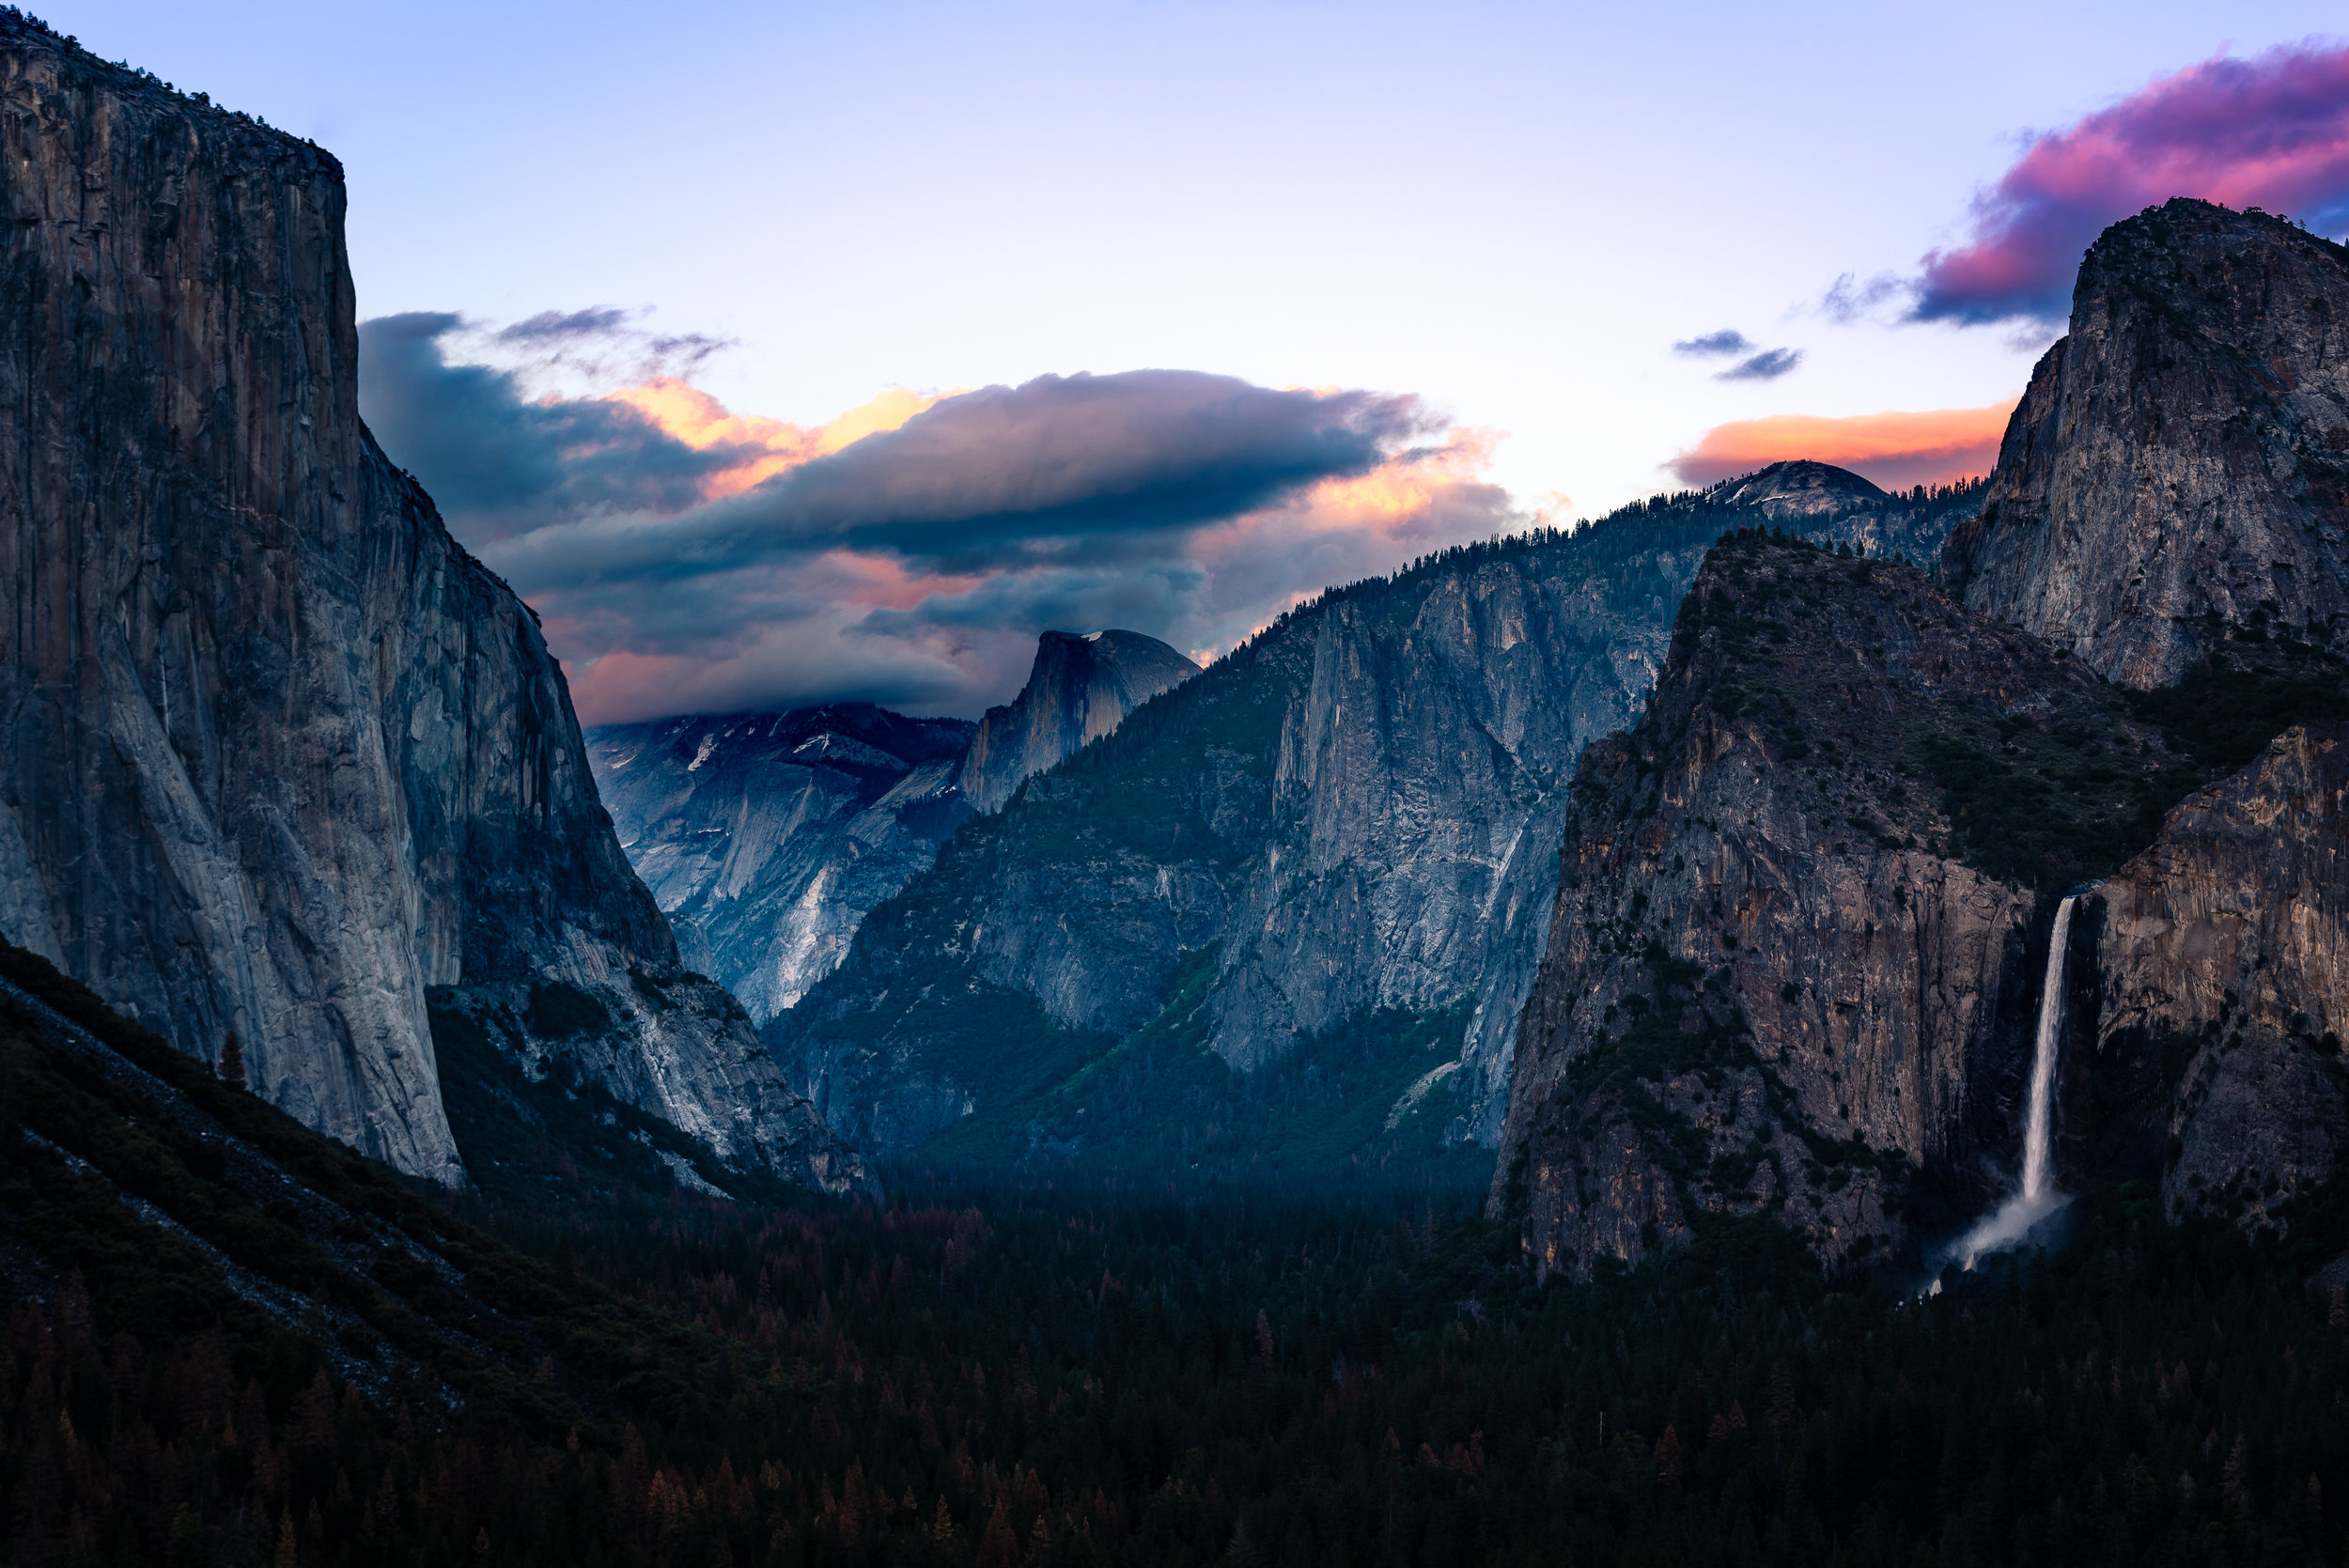 Yosemite View - my contribution to overshooting this spot